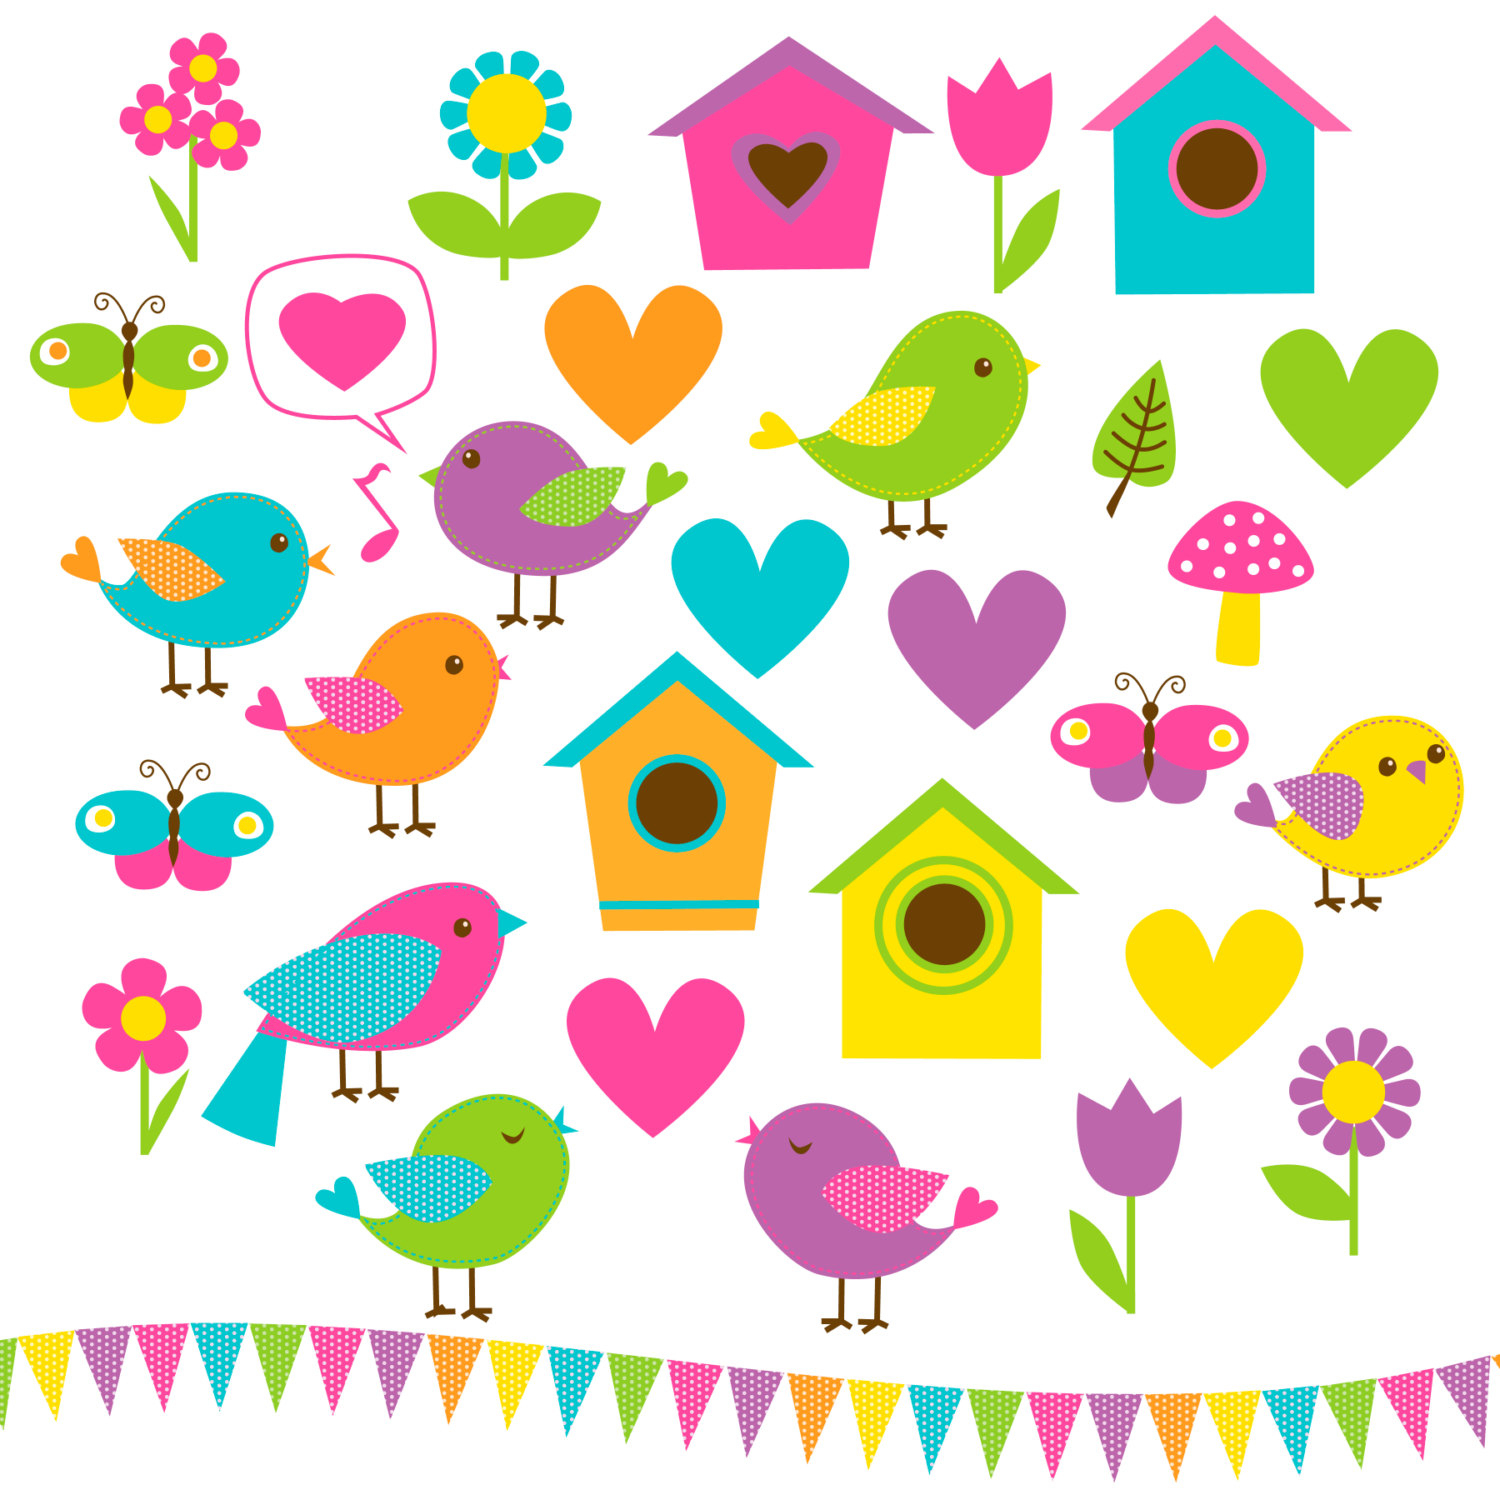 Free Scrapbooking Cliparts, Download Free Clip Art, Free Clip Art On - Free Printable Scrapbook Decorations